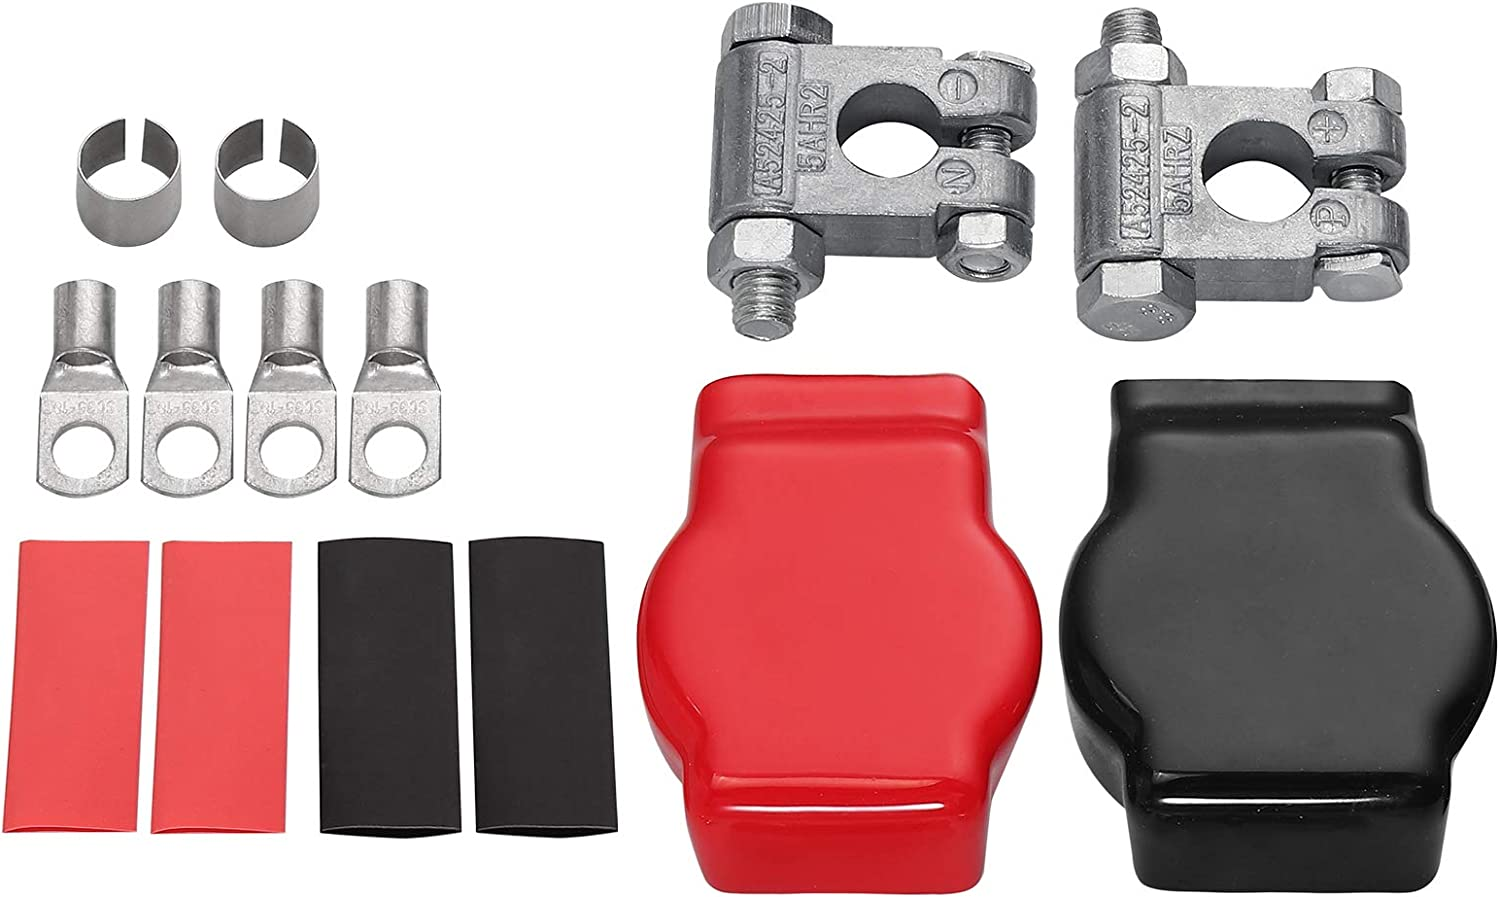 AUTOUTLET Positive and Negative Battery Terminals Military Spec Battery Terminal Top Post Kit with a pair of Adjustable Shims for Car Marine Boat Rv Vehicles